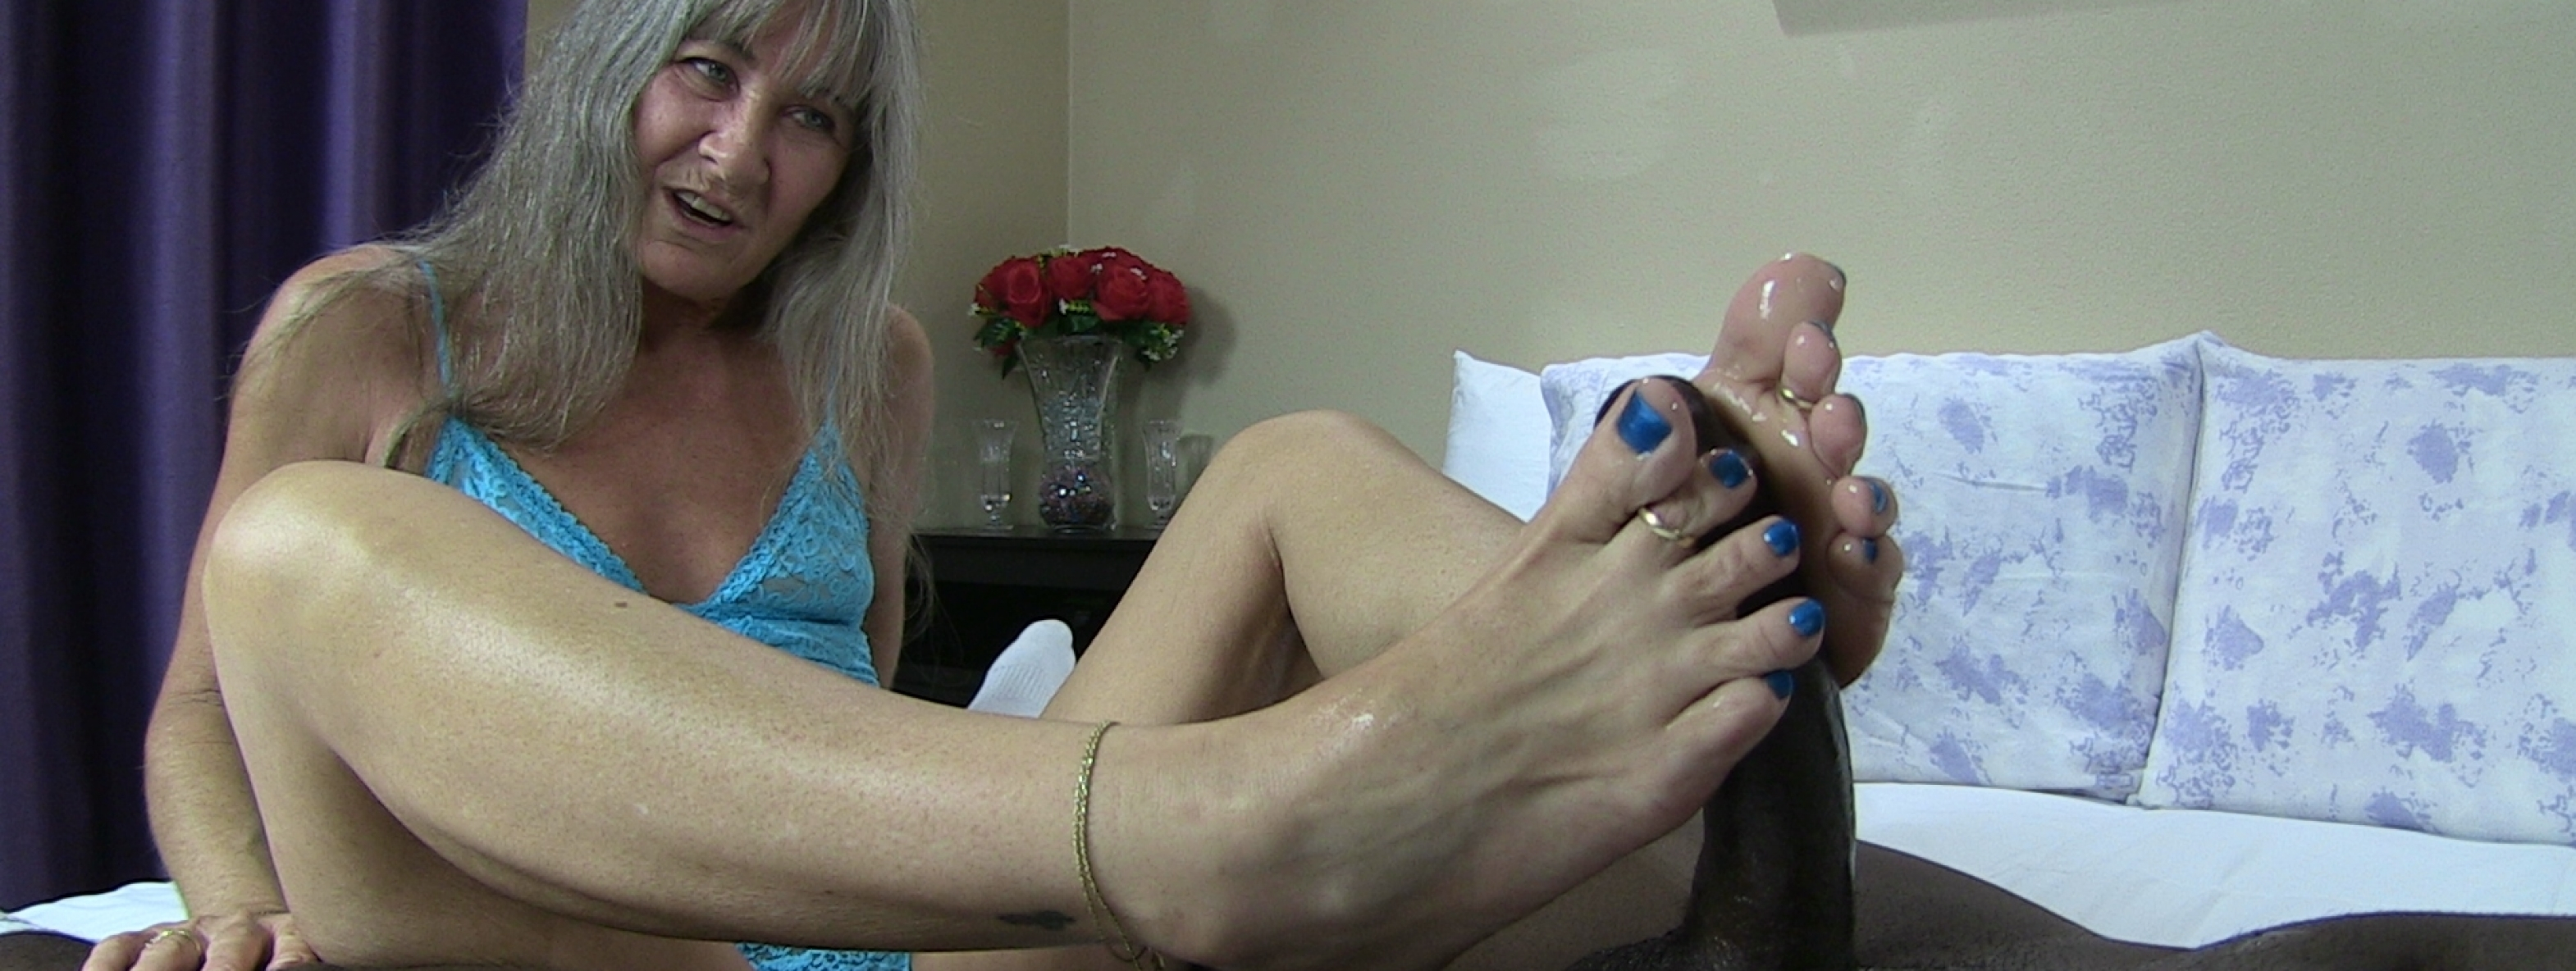 content/blue_toes_foot_job/8.jpg